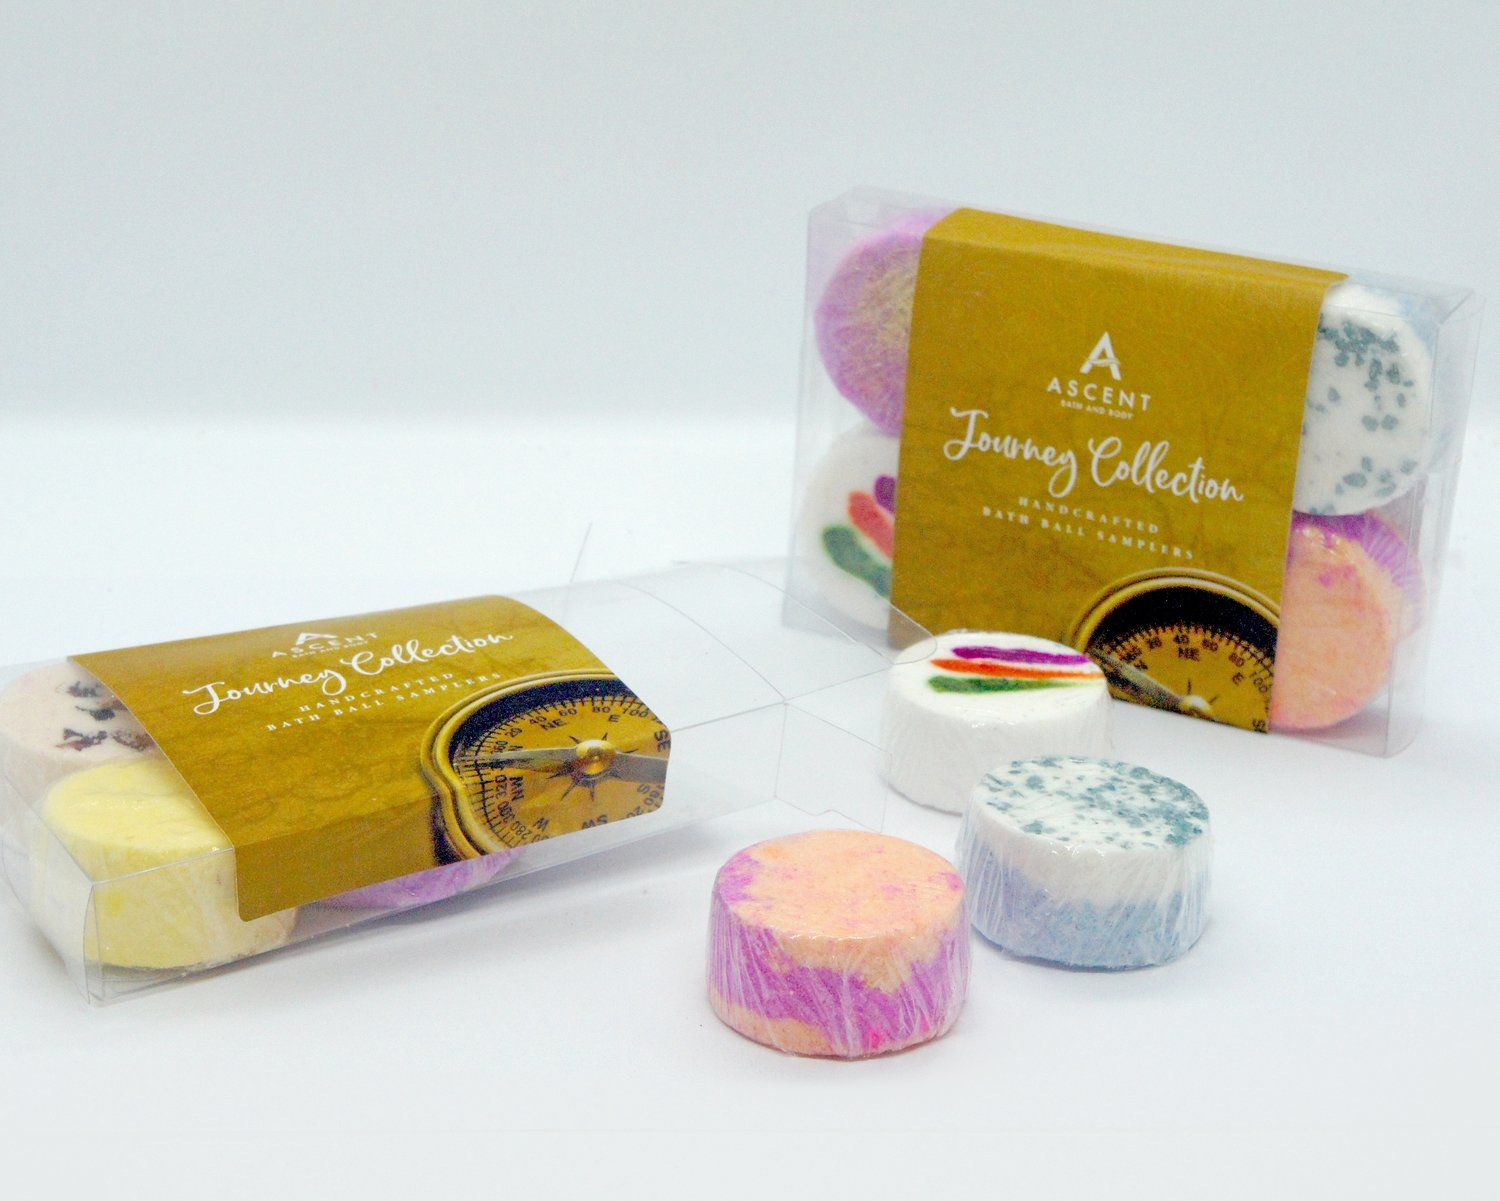 The Journey Collection Mini Bath Bomb Pack